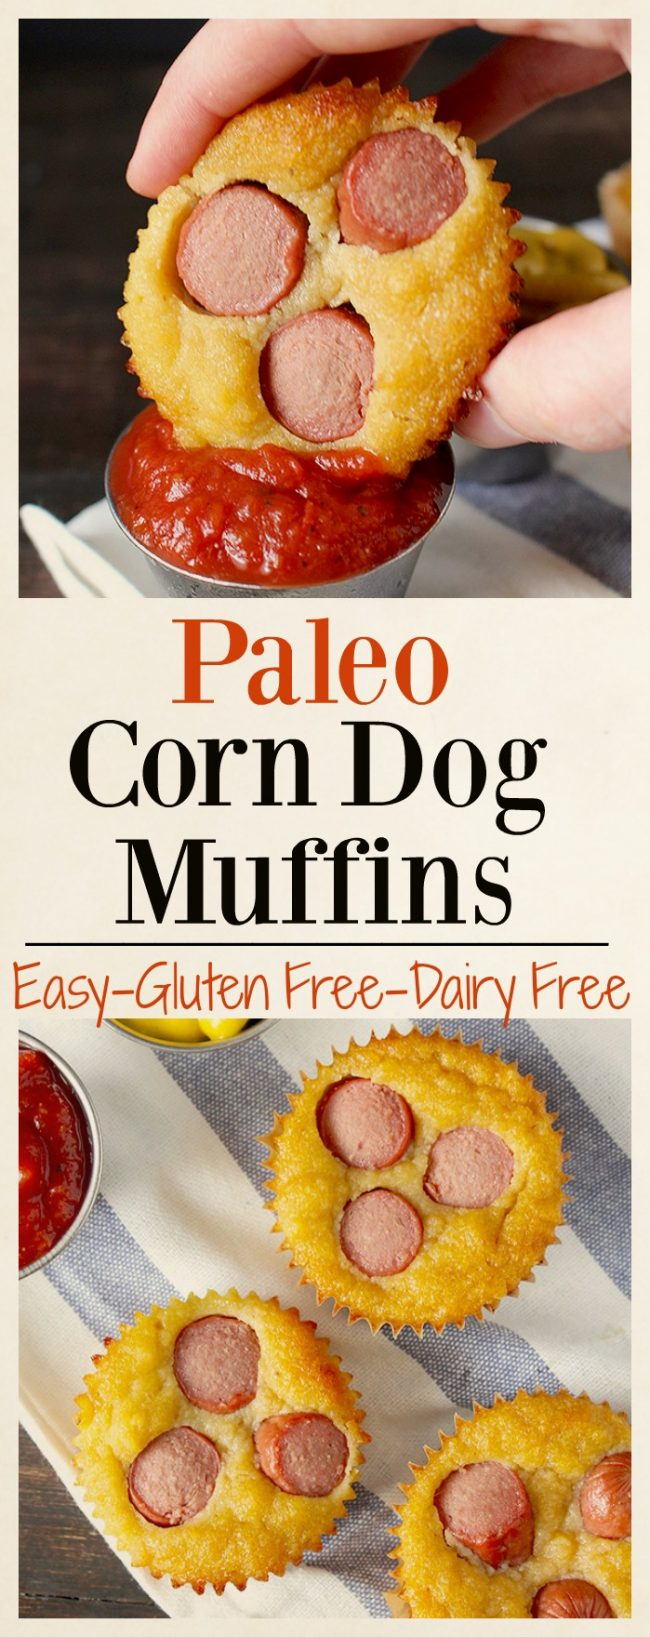 Paleo Corn Dog Muffins Recipe (With images) Healthy